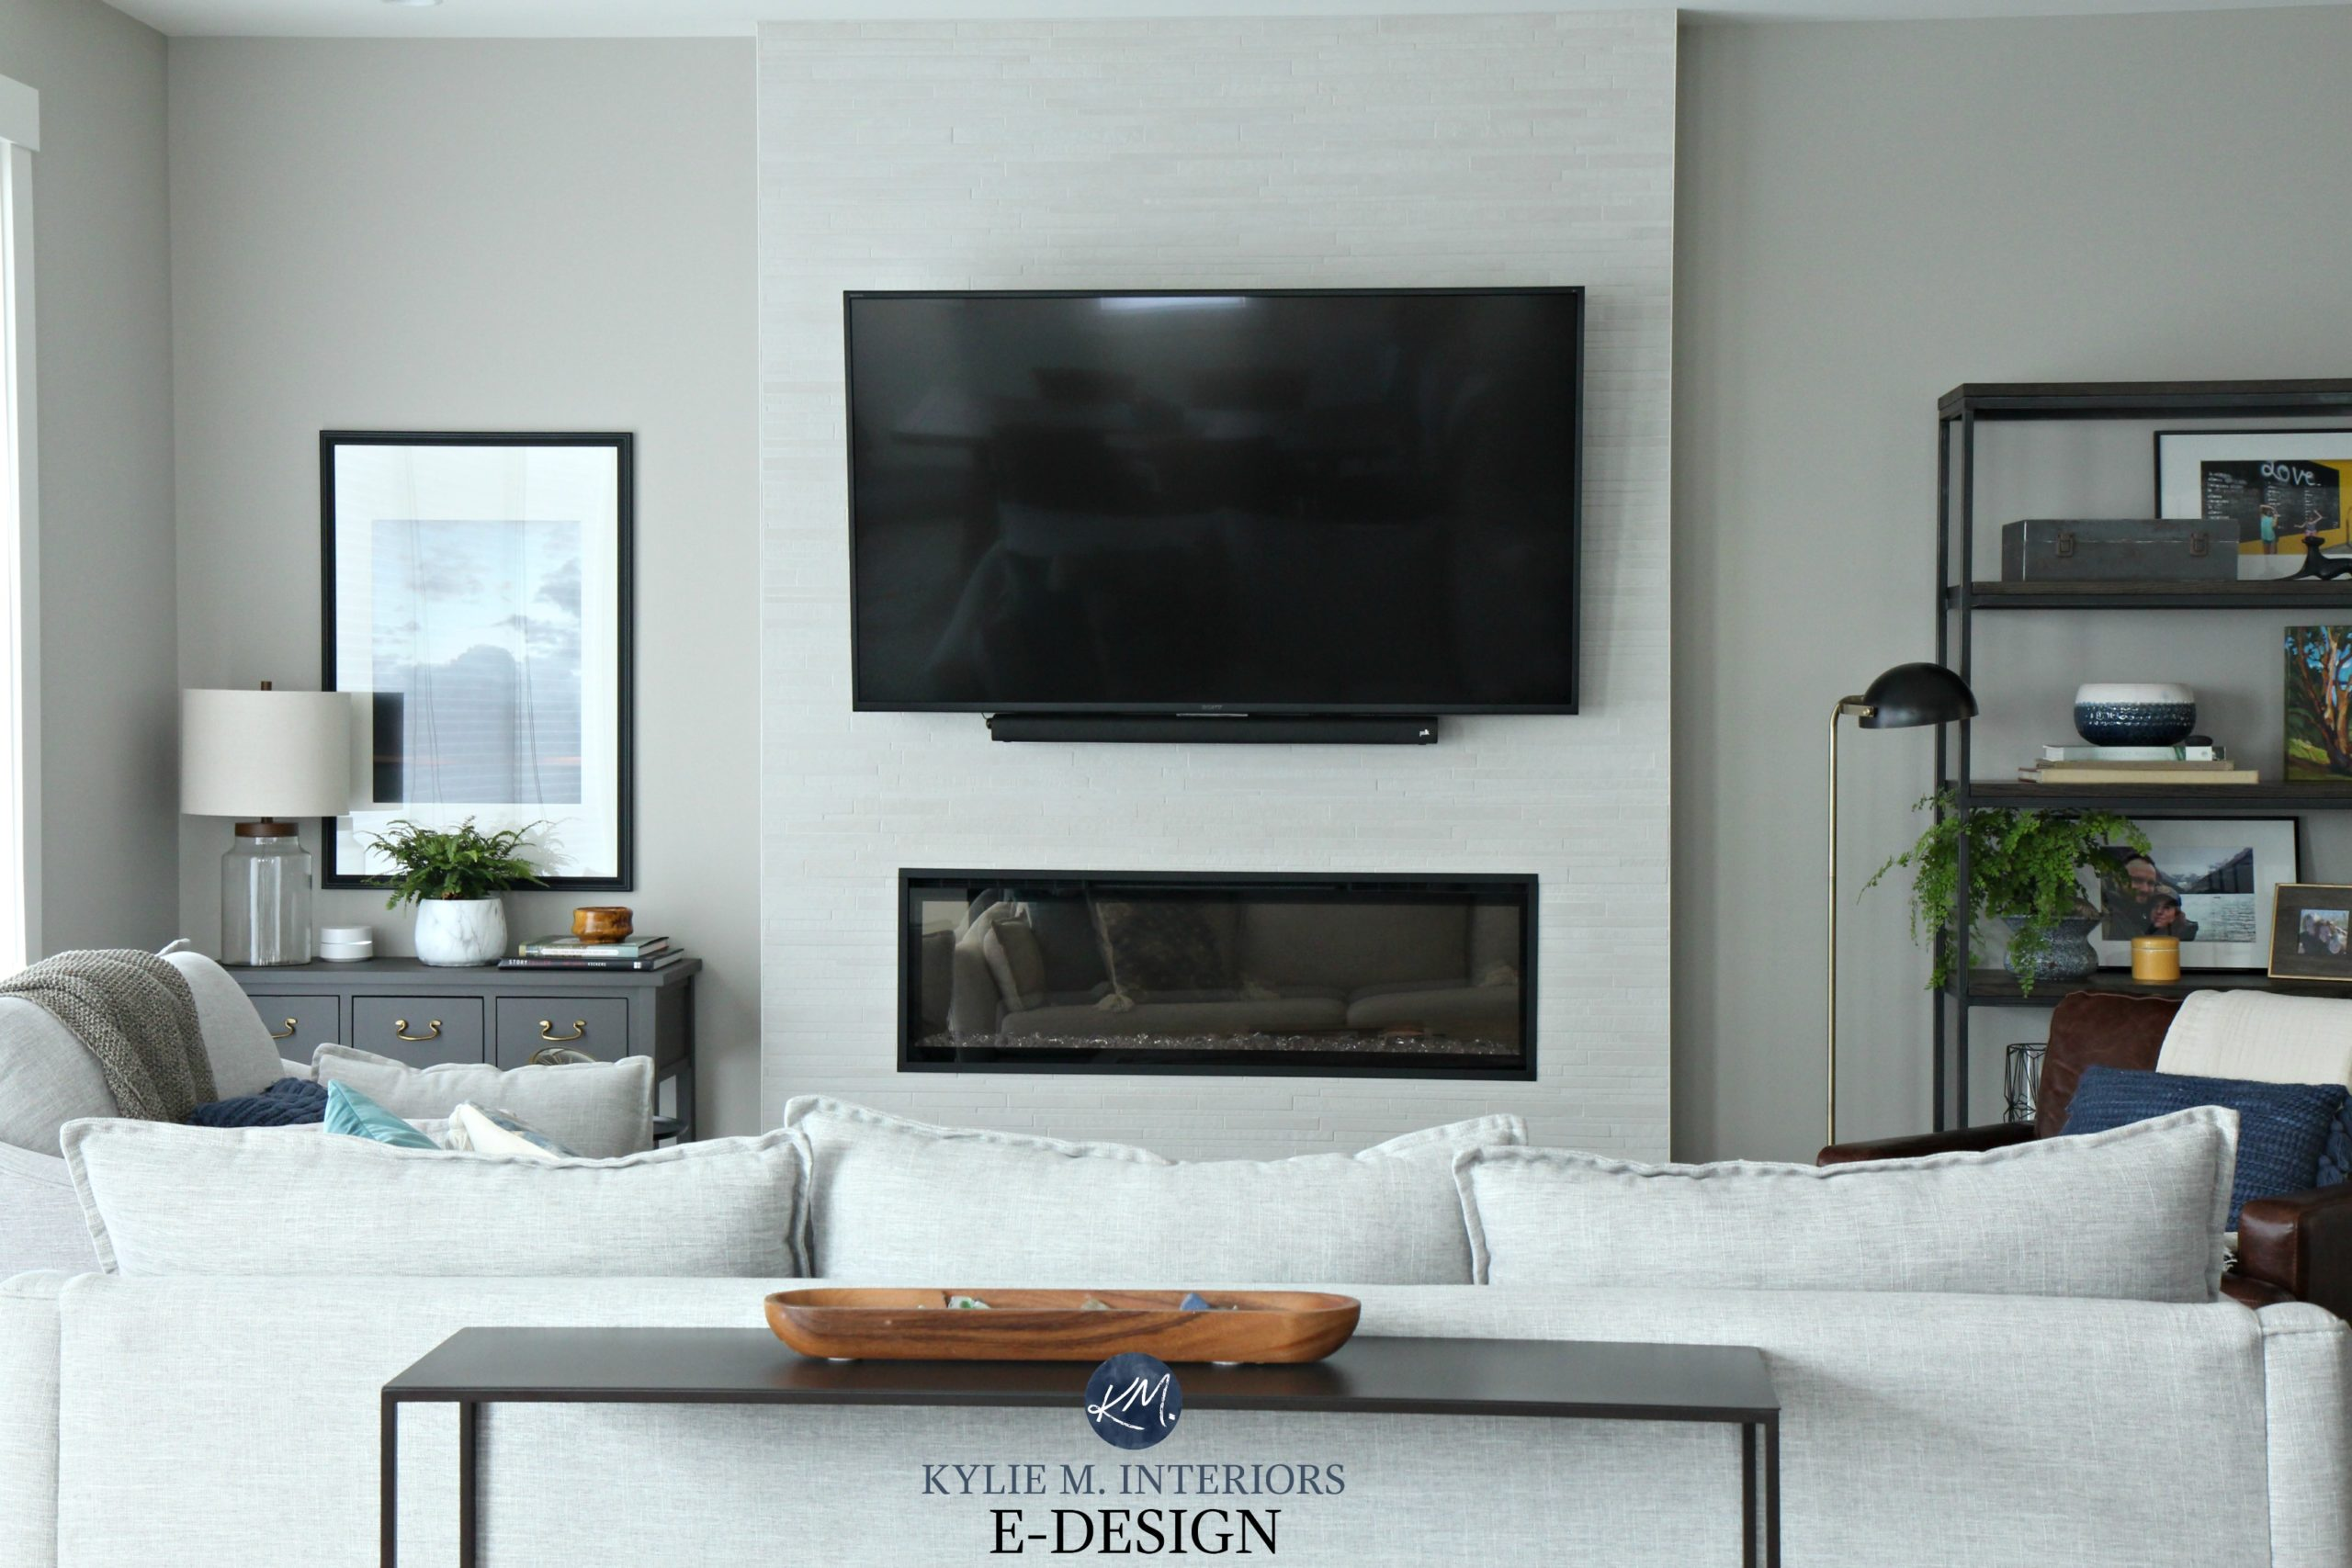 Living Room Electric Fireplace Sherwin Williams Collonade Gray In Living Room Kylie M Interiors